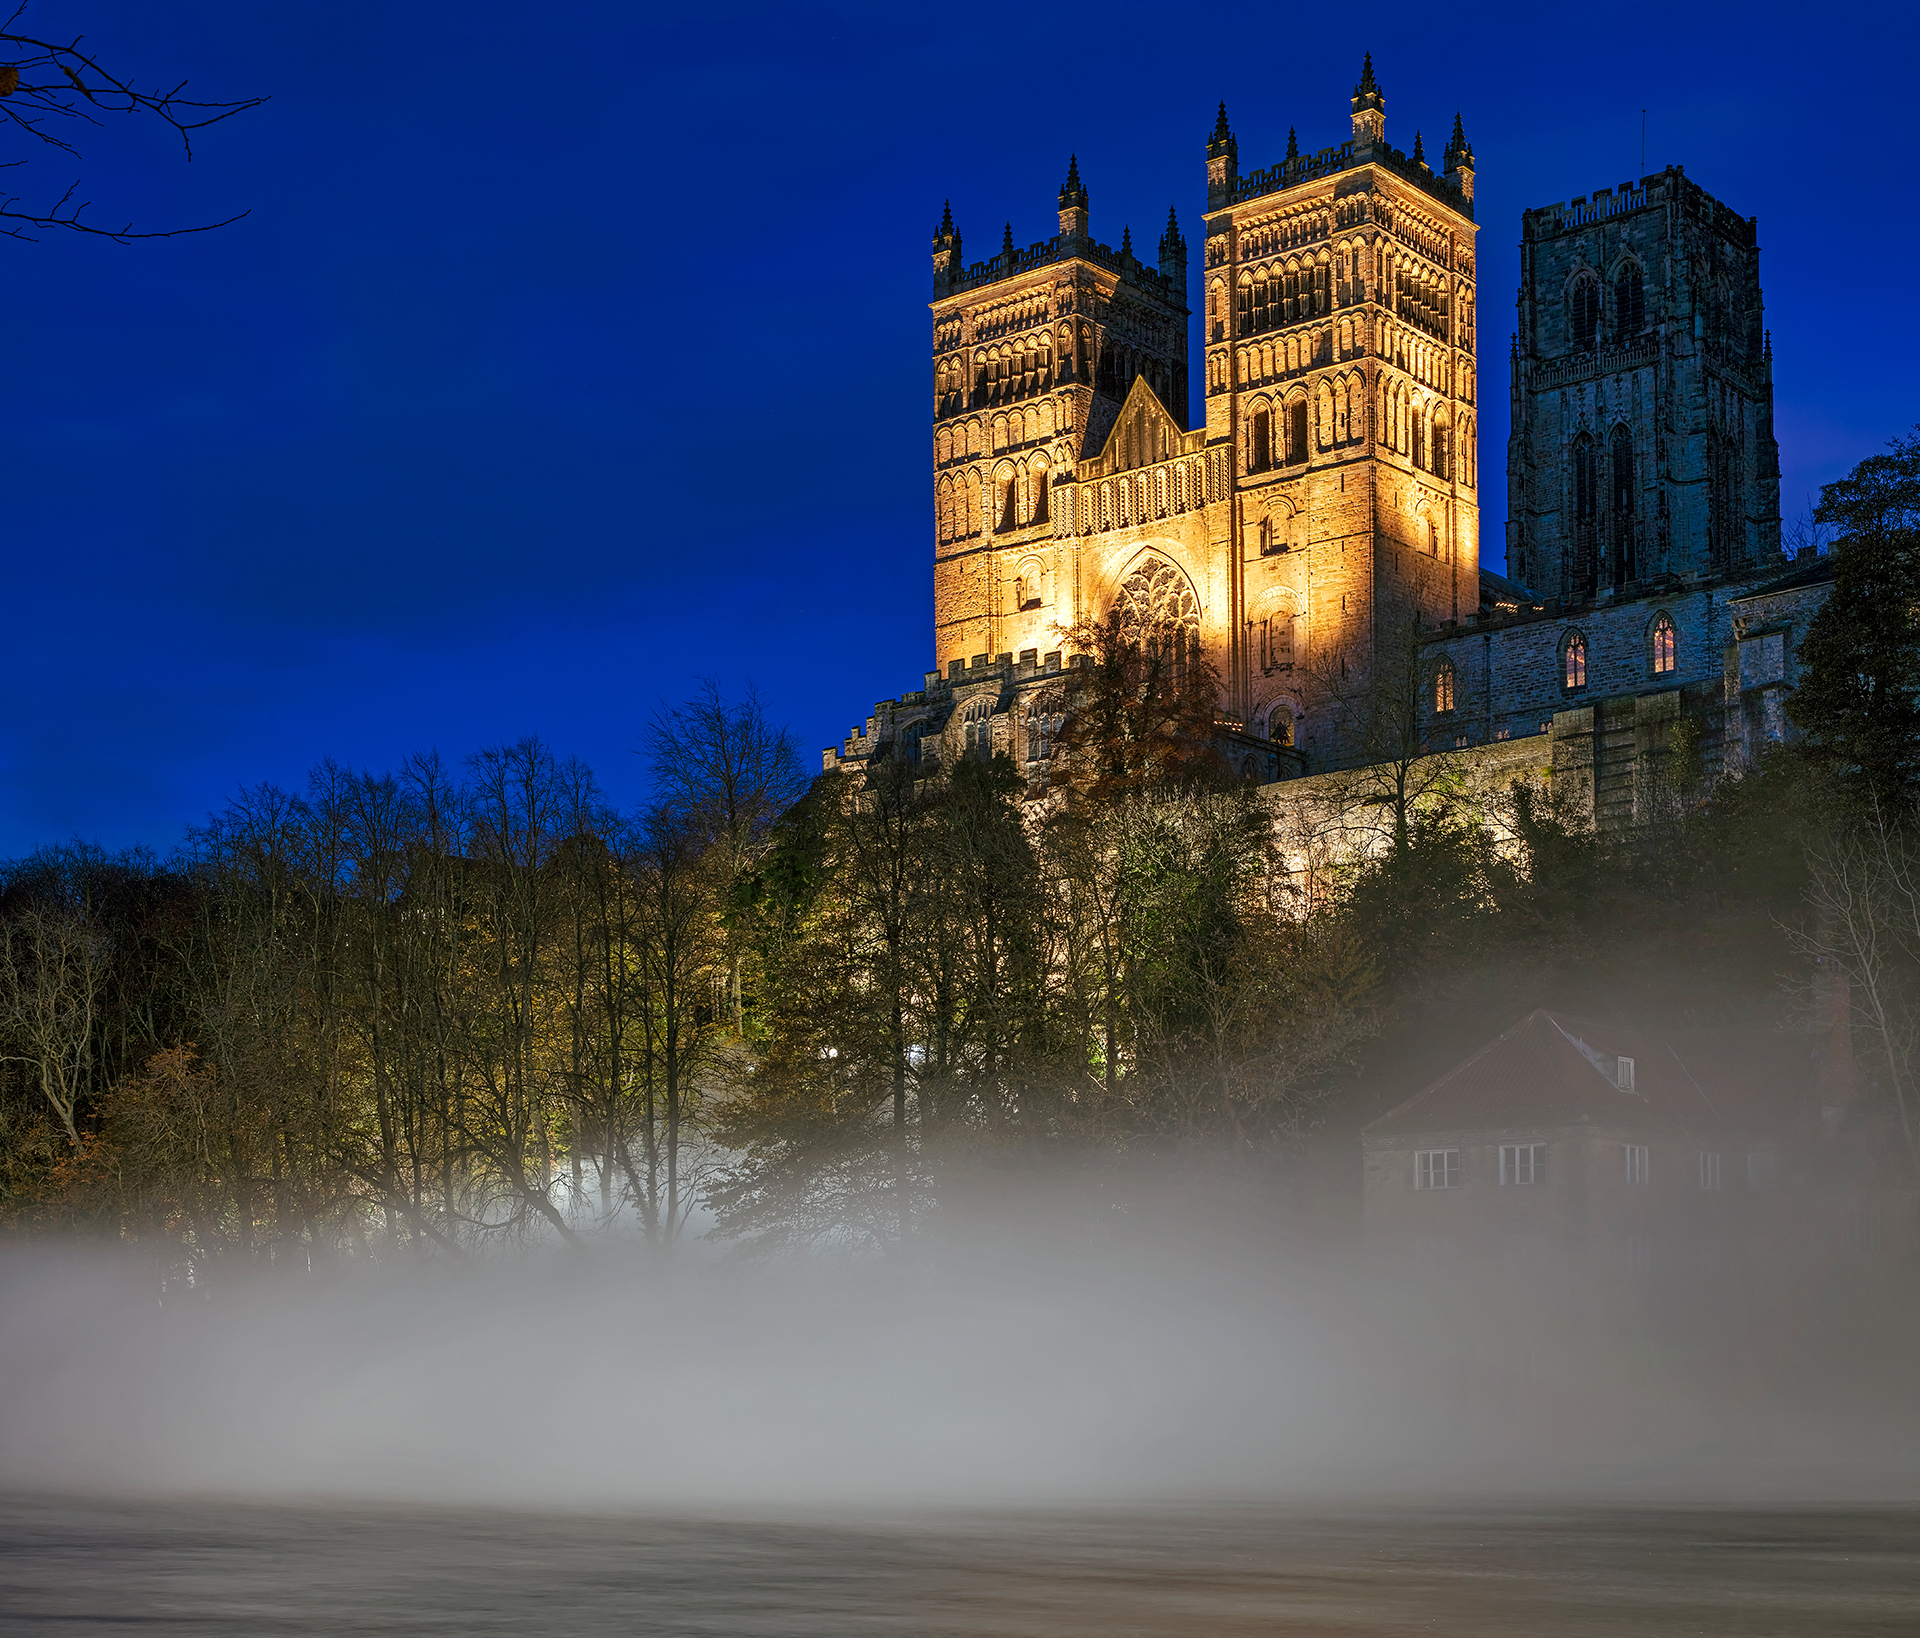 Fogscape #03238, Fujiko Nakaya and Simon Corder. Supported by the Japan Foundation. Lumiere Durham 2019, produced by Artichoke | Lumiere Durham | Fujiko Nakaya and Simon Corder | STIRworld